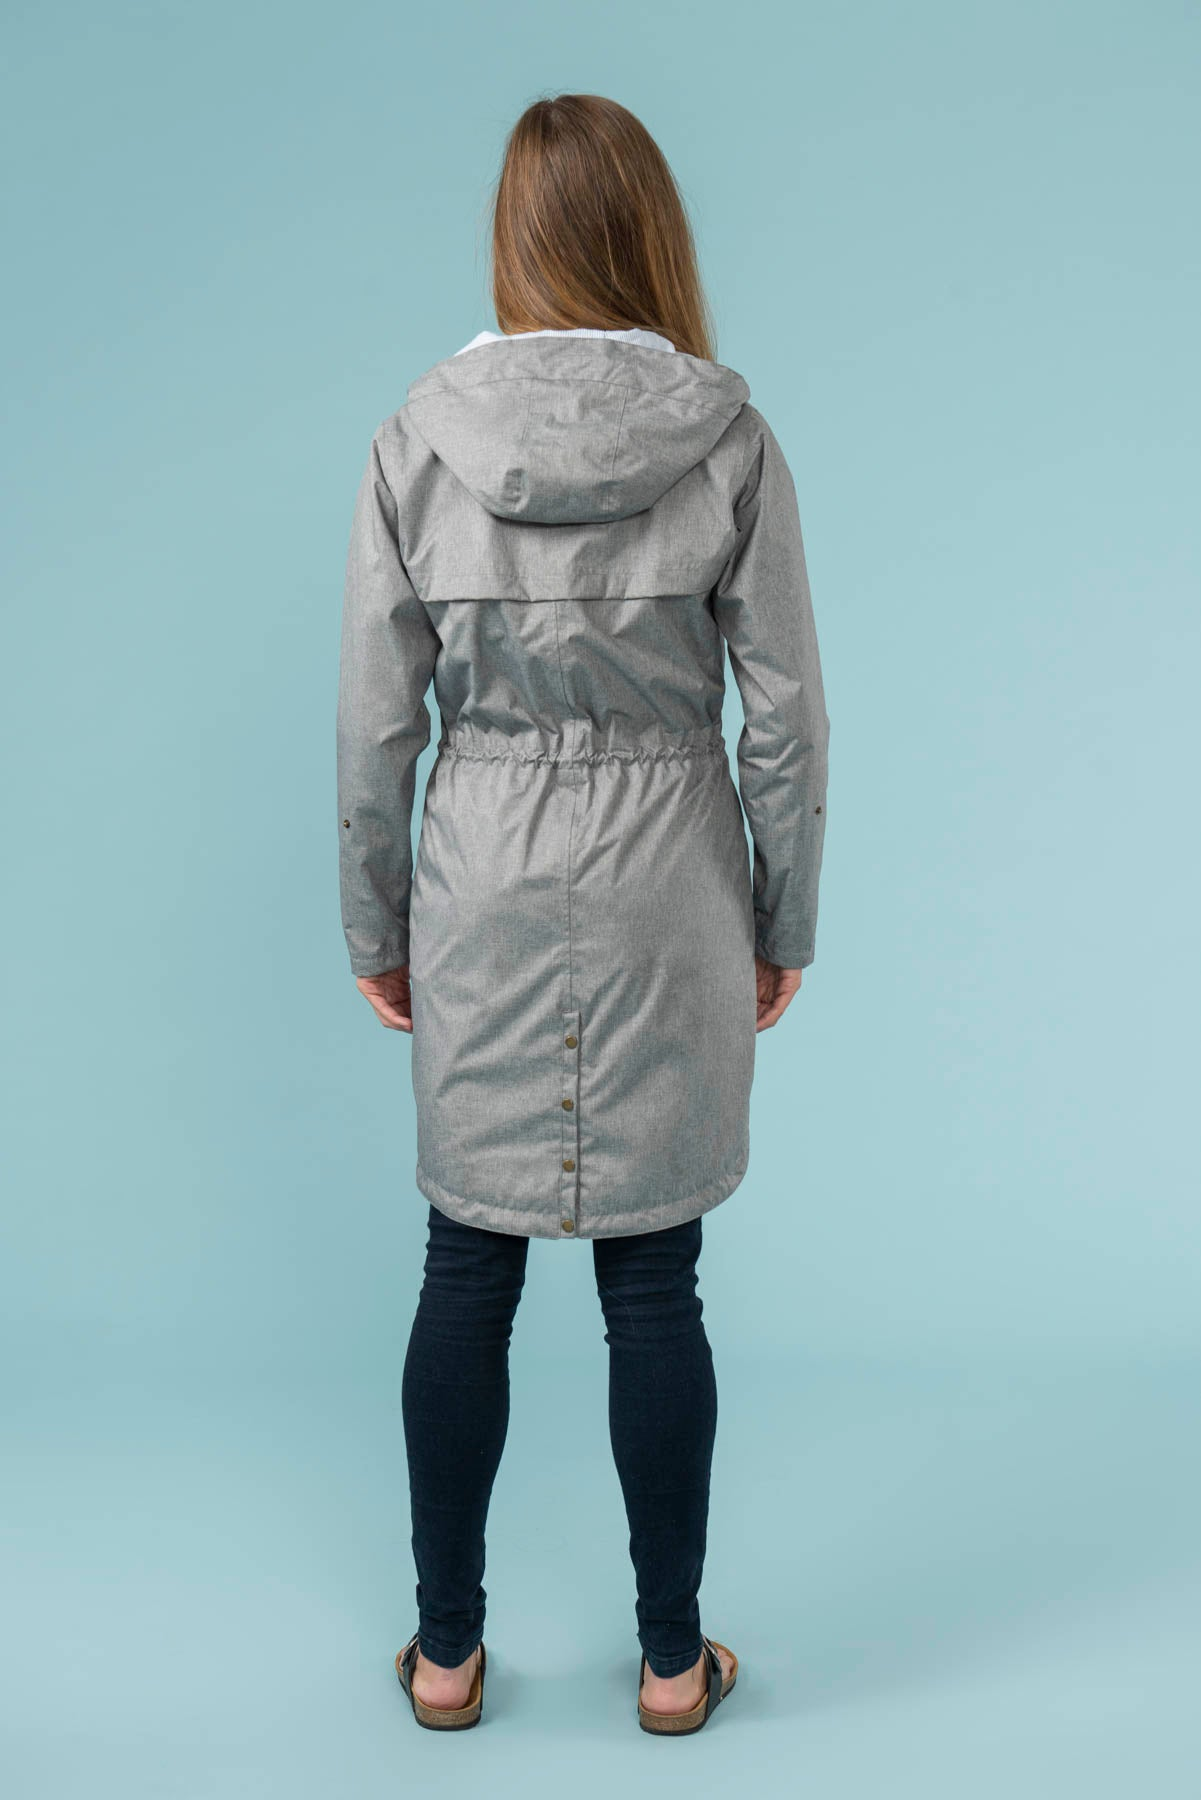 Women's Coats - Emily - Grey Raincoat